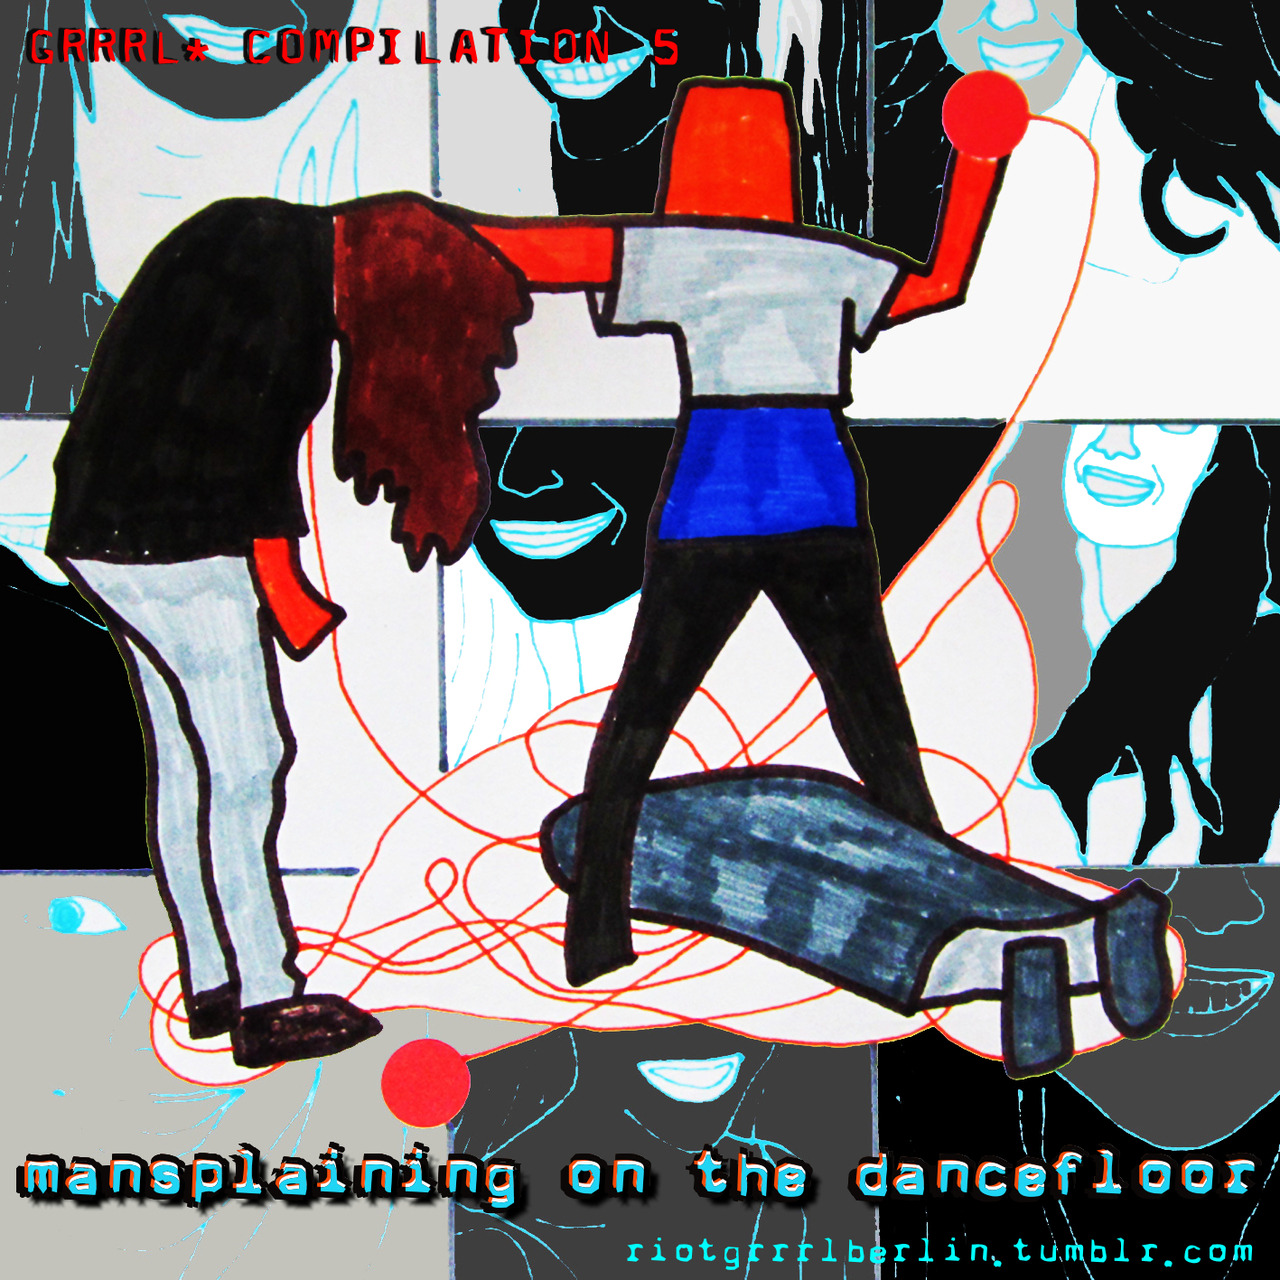 riotgrrrlberlin:  here we go!!! RGBC05 [MANSPLAINING ON THE DANCEFLOOR] UP NOW!!! FREE DOWNLOAD!! plz spread the word ♥PLAYLIST: (alphabetical)4PROPRI8 - Road Trip  A Spoon Called Phranc-Bloody Knowledge  Aivery-You Got Lost  Ana Trash (aka Boom Boom Trash)-Full of Shit  Cat Bear Tree-Crayons  Daisied-Cannibal Eye  Dead by Pregnancy-Sexism  Doll Fight!-Plastic Revolution  Drained Glory-Terminal  Factory Acts-Stock Exchange Fred and Bob-Lady  G.U.T.S.-SuperSHE  in_stereonuts-No, This Song Is Not About You  Kisston-Femme  Lilidollrage-Goddess Of Nothing  Louise Distras-The Hand You Hold  Luise Pop-Fast And Frightening  Mean Bikini-Sick Of Love  Mistress Distress-Shut Up And Die  Molasses-No Weaker A Being  Psy'Aviah-On My Own  Punc(ke-Ritam Kaosa  Salto Nel Buio-La Paura Non Trionfeà  Secondhand Underpants-Get in the Car  See The Train, It's Yours-The Dream Machine  Sick Sad World-Microwave Cakes  Squid-Leave us alone  The Bloody Muffs-Yoink!  The Boys-Stripper  The Cryptics-Bluebell  Tittenbonus-666 Kisses  V For Vagina - Les Filles De Bikini Kill (You Are Not The Queen Of My Neigbourghood)  Vague-à-bonde-Evolved  Verveine-Wild Recording  ШАПКА!(Schabka!)-ПОИДТЕ ДОМОЙ (Poiditje damoi) RIOT GRRRL BERLIN: ALL FREE GRRRL* COMPILATIONSRIOT GRRRL BERLIN TUMBLRRIOT GRRRL BERLIN FACEBOOKRIOT GRRRL BERLIN TWITTER HOW TO SUBMIT (COVER & MUSIC) RIOT GRRRLS* on FACEBOOK:Riot Grrrl Hamburg Riot Grrrl Bielefeld Riot Grrrl Ruhrgebiet Riot Grrrl Tübingen Riot Grrrl Würzburg Riot Grrrl Frankfurt/M Riot Grrrl Grrrlmany Riot Grrrl Vienna Riot Grrrl Filmtage Wien Riot Grrrl Paris Riot Grrrl Lisbon Riot Grrrl Glasgow Riot Grrrl Edinburgh Riot Grrrl Kuching (Malaysia) Rior Grrrl Brasil Riot Grrrl Paraguay Riot Grrrl UK (01) Riot Grrrl UK (02)  Riot Grrrl Birmingham Grrrl Army Seattle Riot Grrrl Jacksonville Riot Grrrl Los Angeles Riot Grrrl LA Riot Grrrl Philadelphia  Riot Grrrl San Fransisco  Riot Grrrl Ventura County Riot Grrrl FlintRiot Grrrl Madison  Riot Grrrl Ie  Riot Grrls NYC Riot Grrrl Adelaide Riot Grrrls United Riot Grrrl OnlineRiot Grrrl Scouts and-AlliesRebel Grrrl Italiana Riot Grrrls looking 4 bandsFat Grrrl ActivismTrans Grrrl Riot GirlVIRUS/grrrlVIRUS